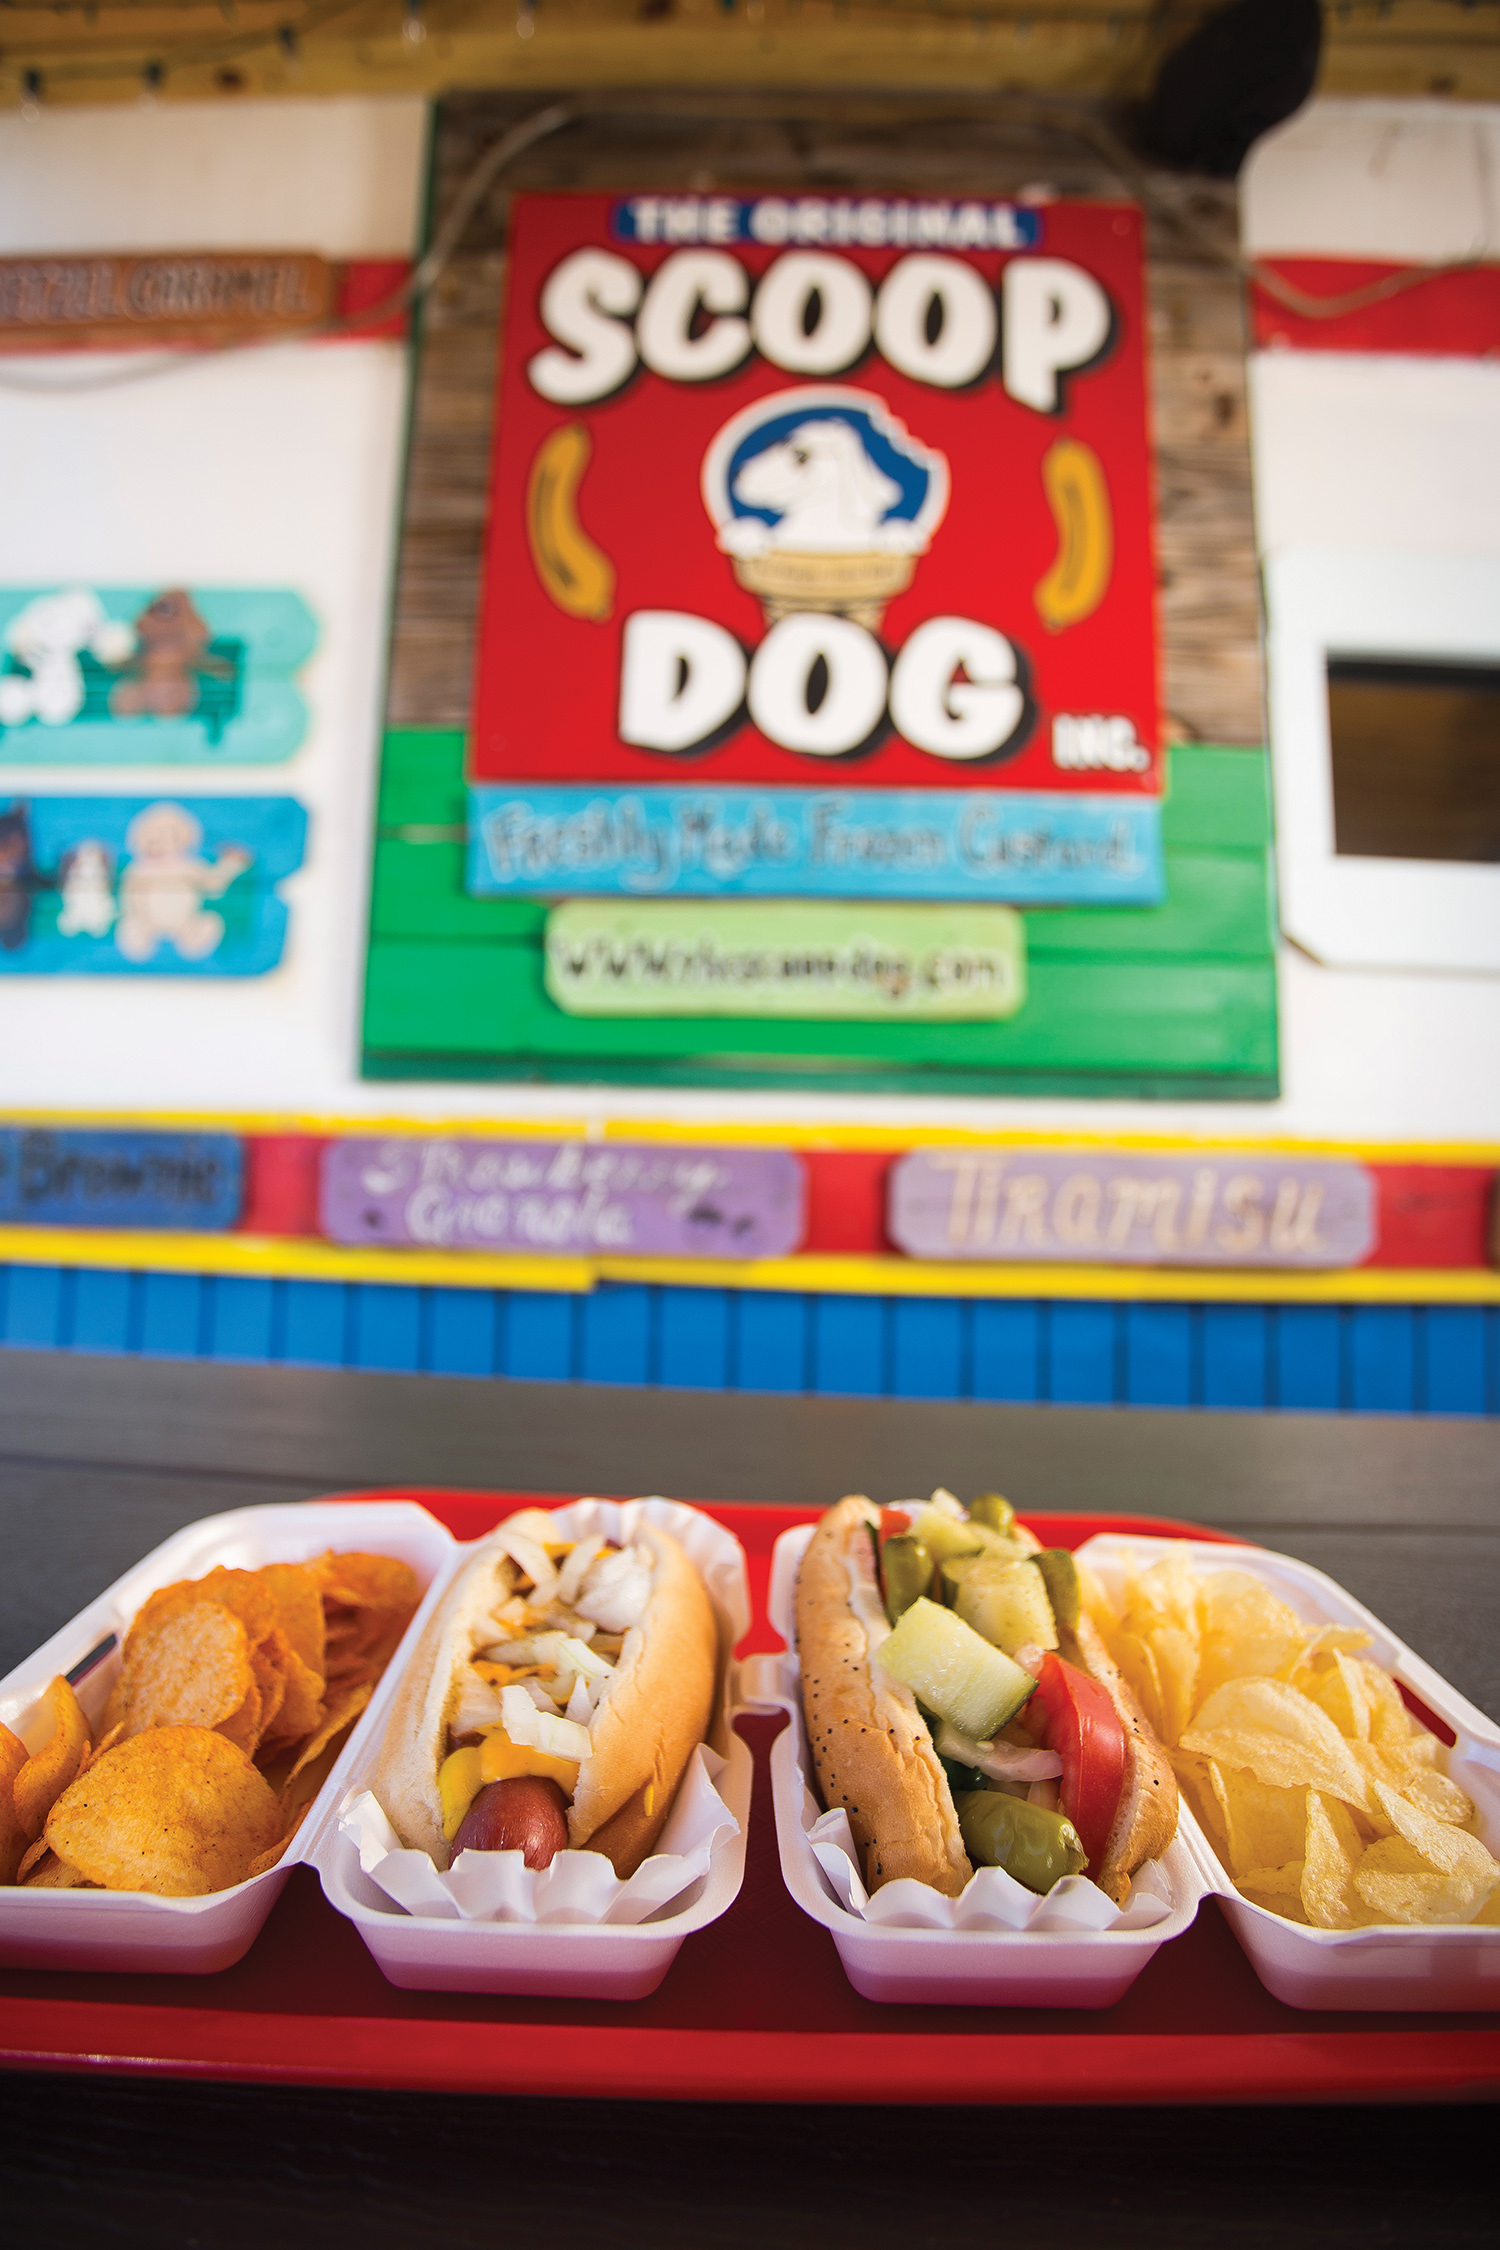 Scoop Dog hot dogs, The Detroit Dog (left) and The Chicago Dog (right)